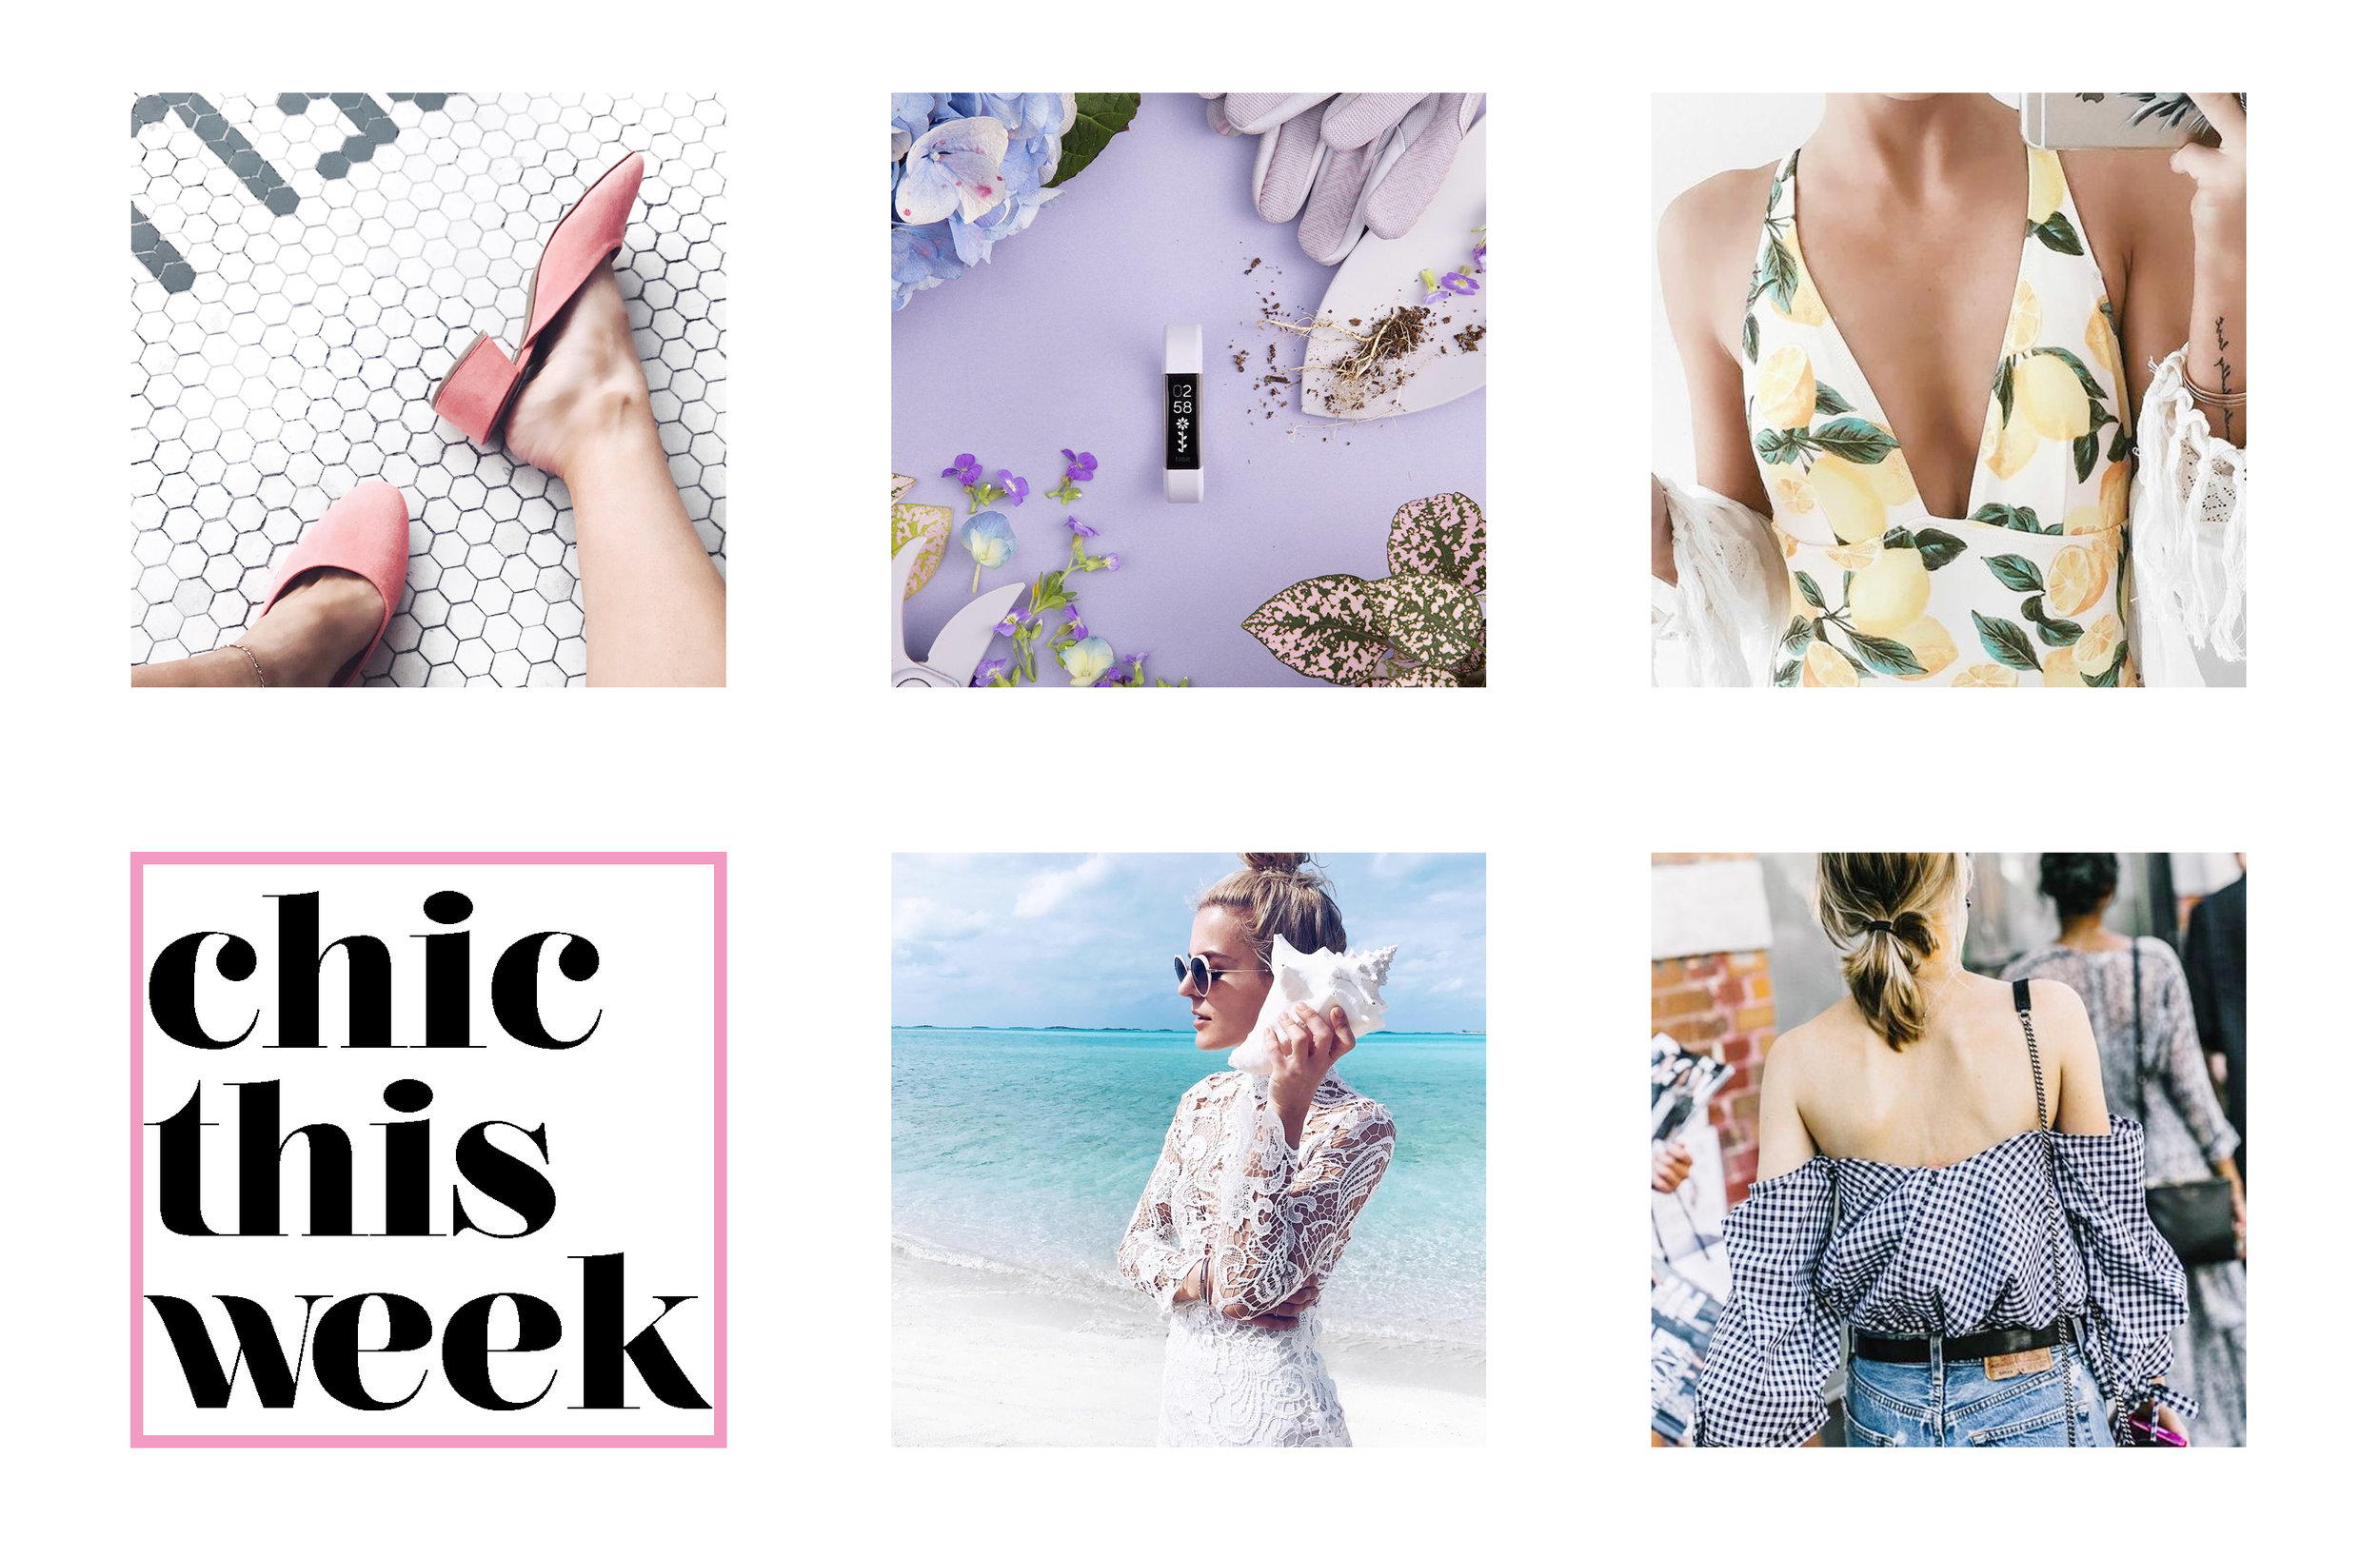 What's chic this week (via blogger Chic Now)